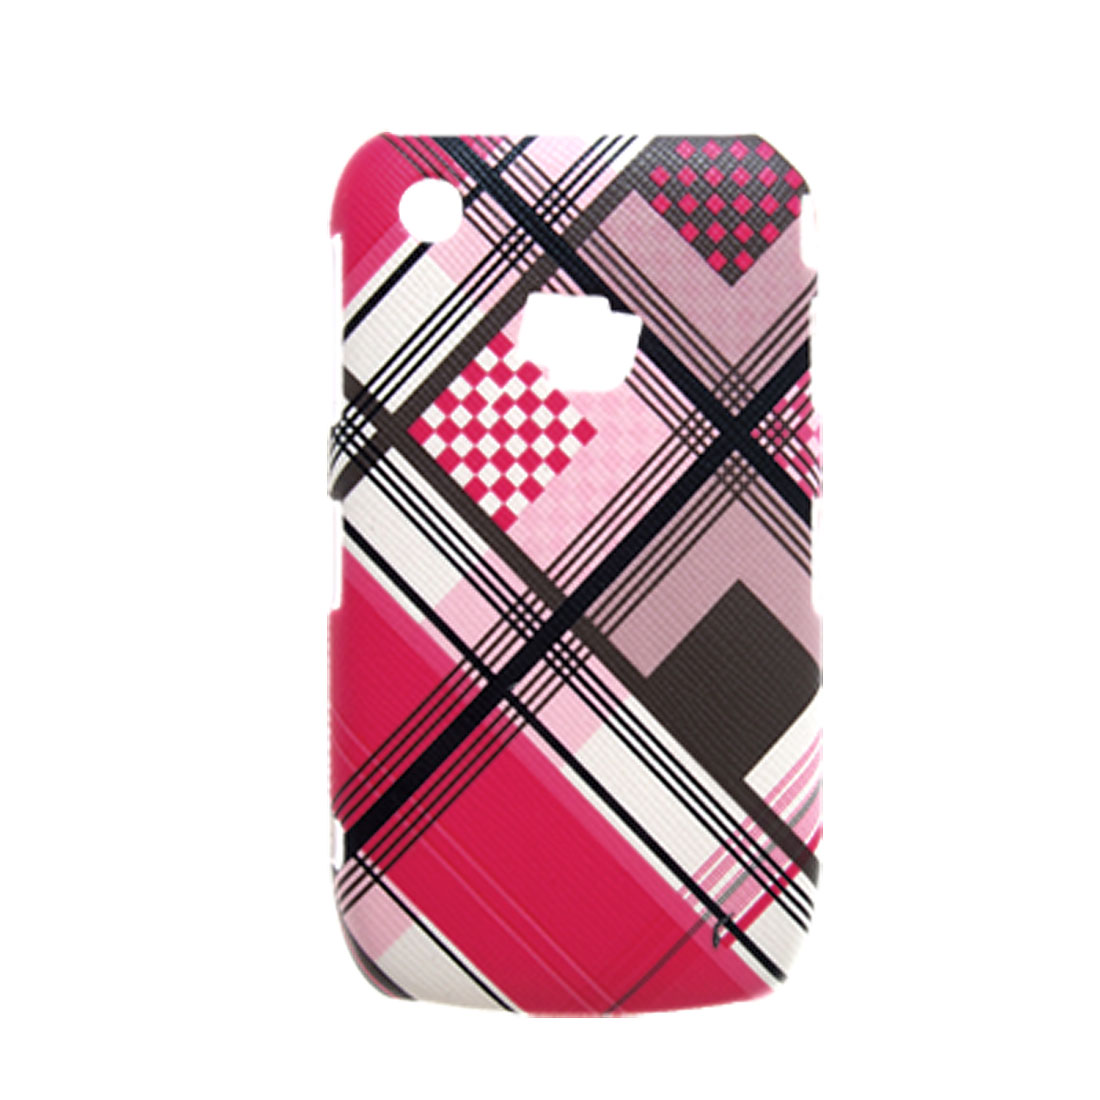 Plaid Faux Leather Coated Hard Plastic Colorful Case for Blackberry 8520